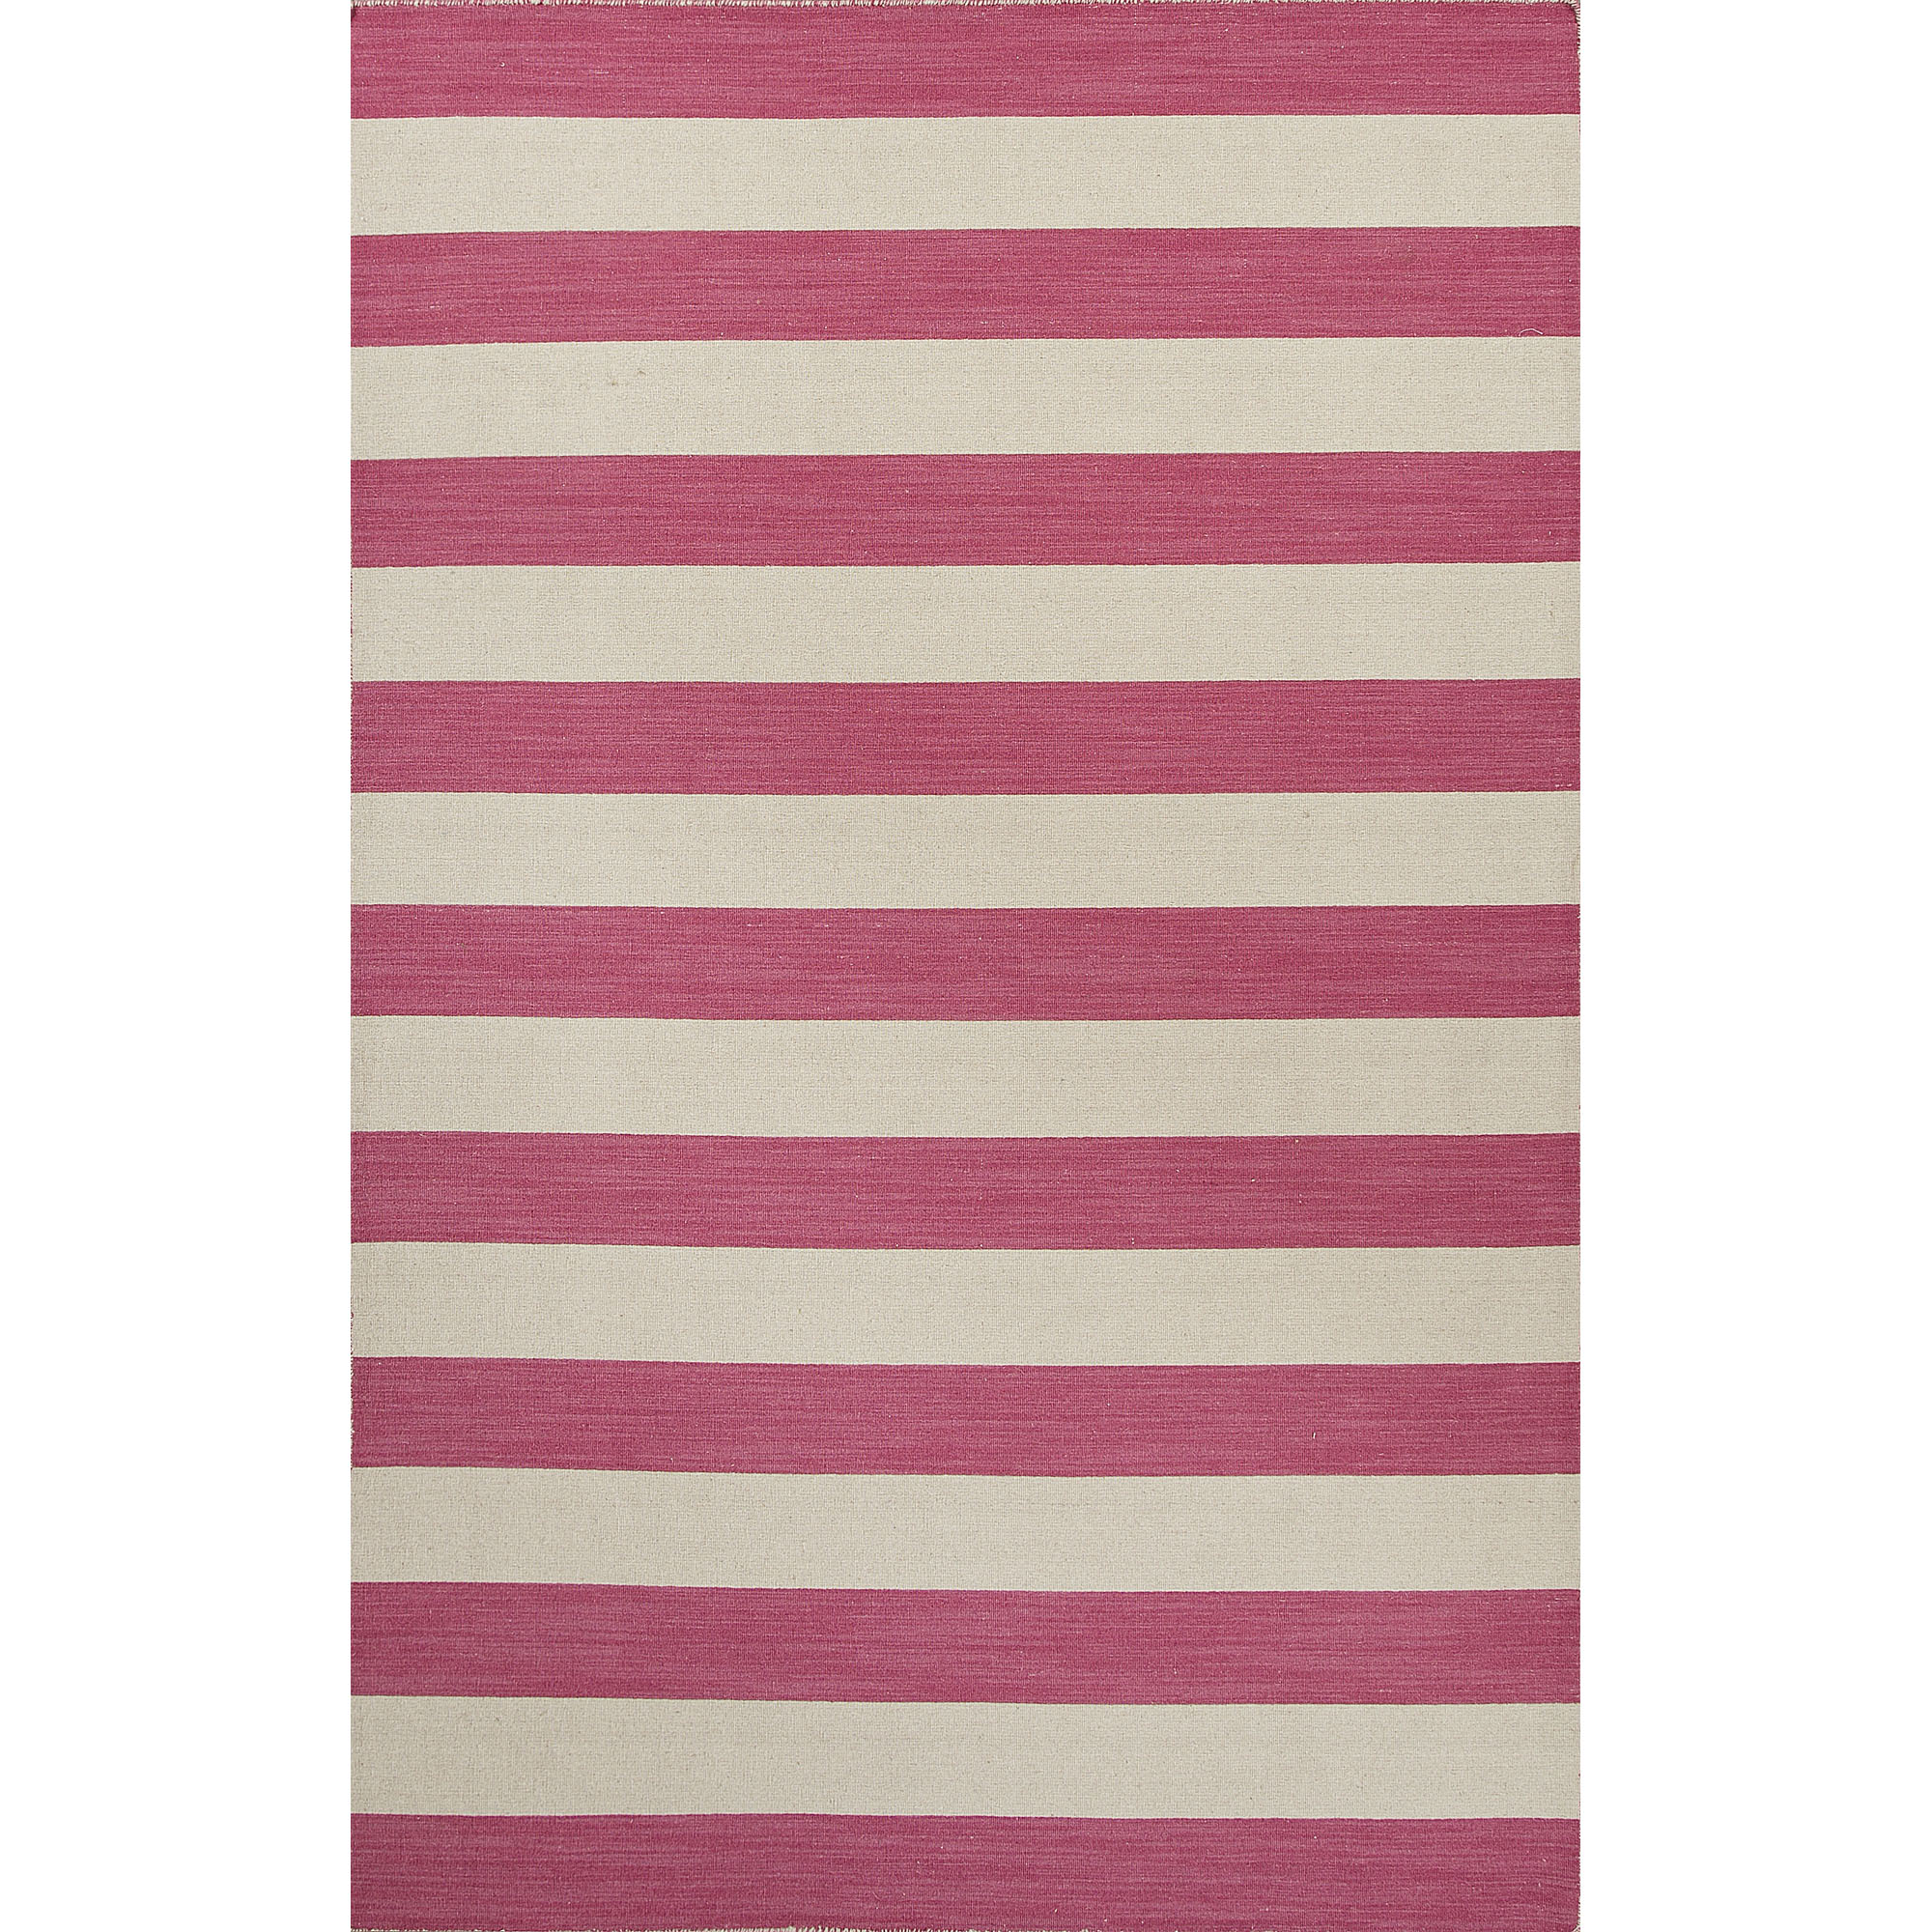 Pura Vida 9 x 12 Rug by JAIPUR Living at Malouf Furniture Co.